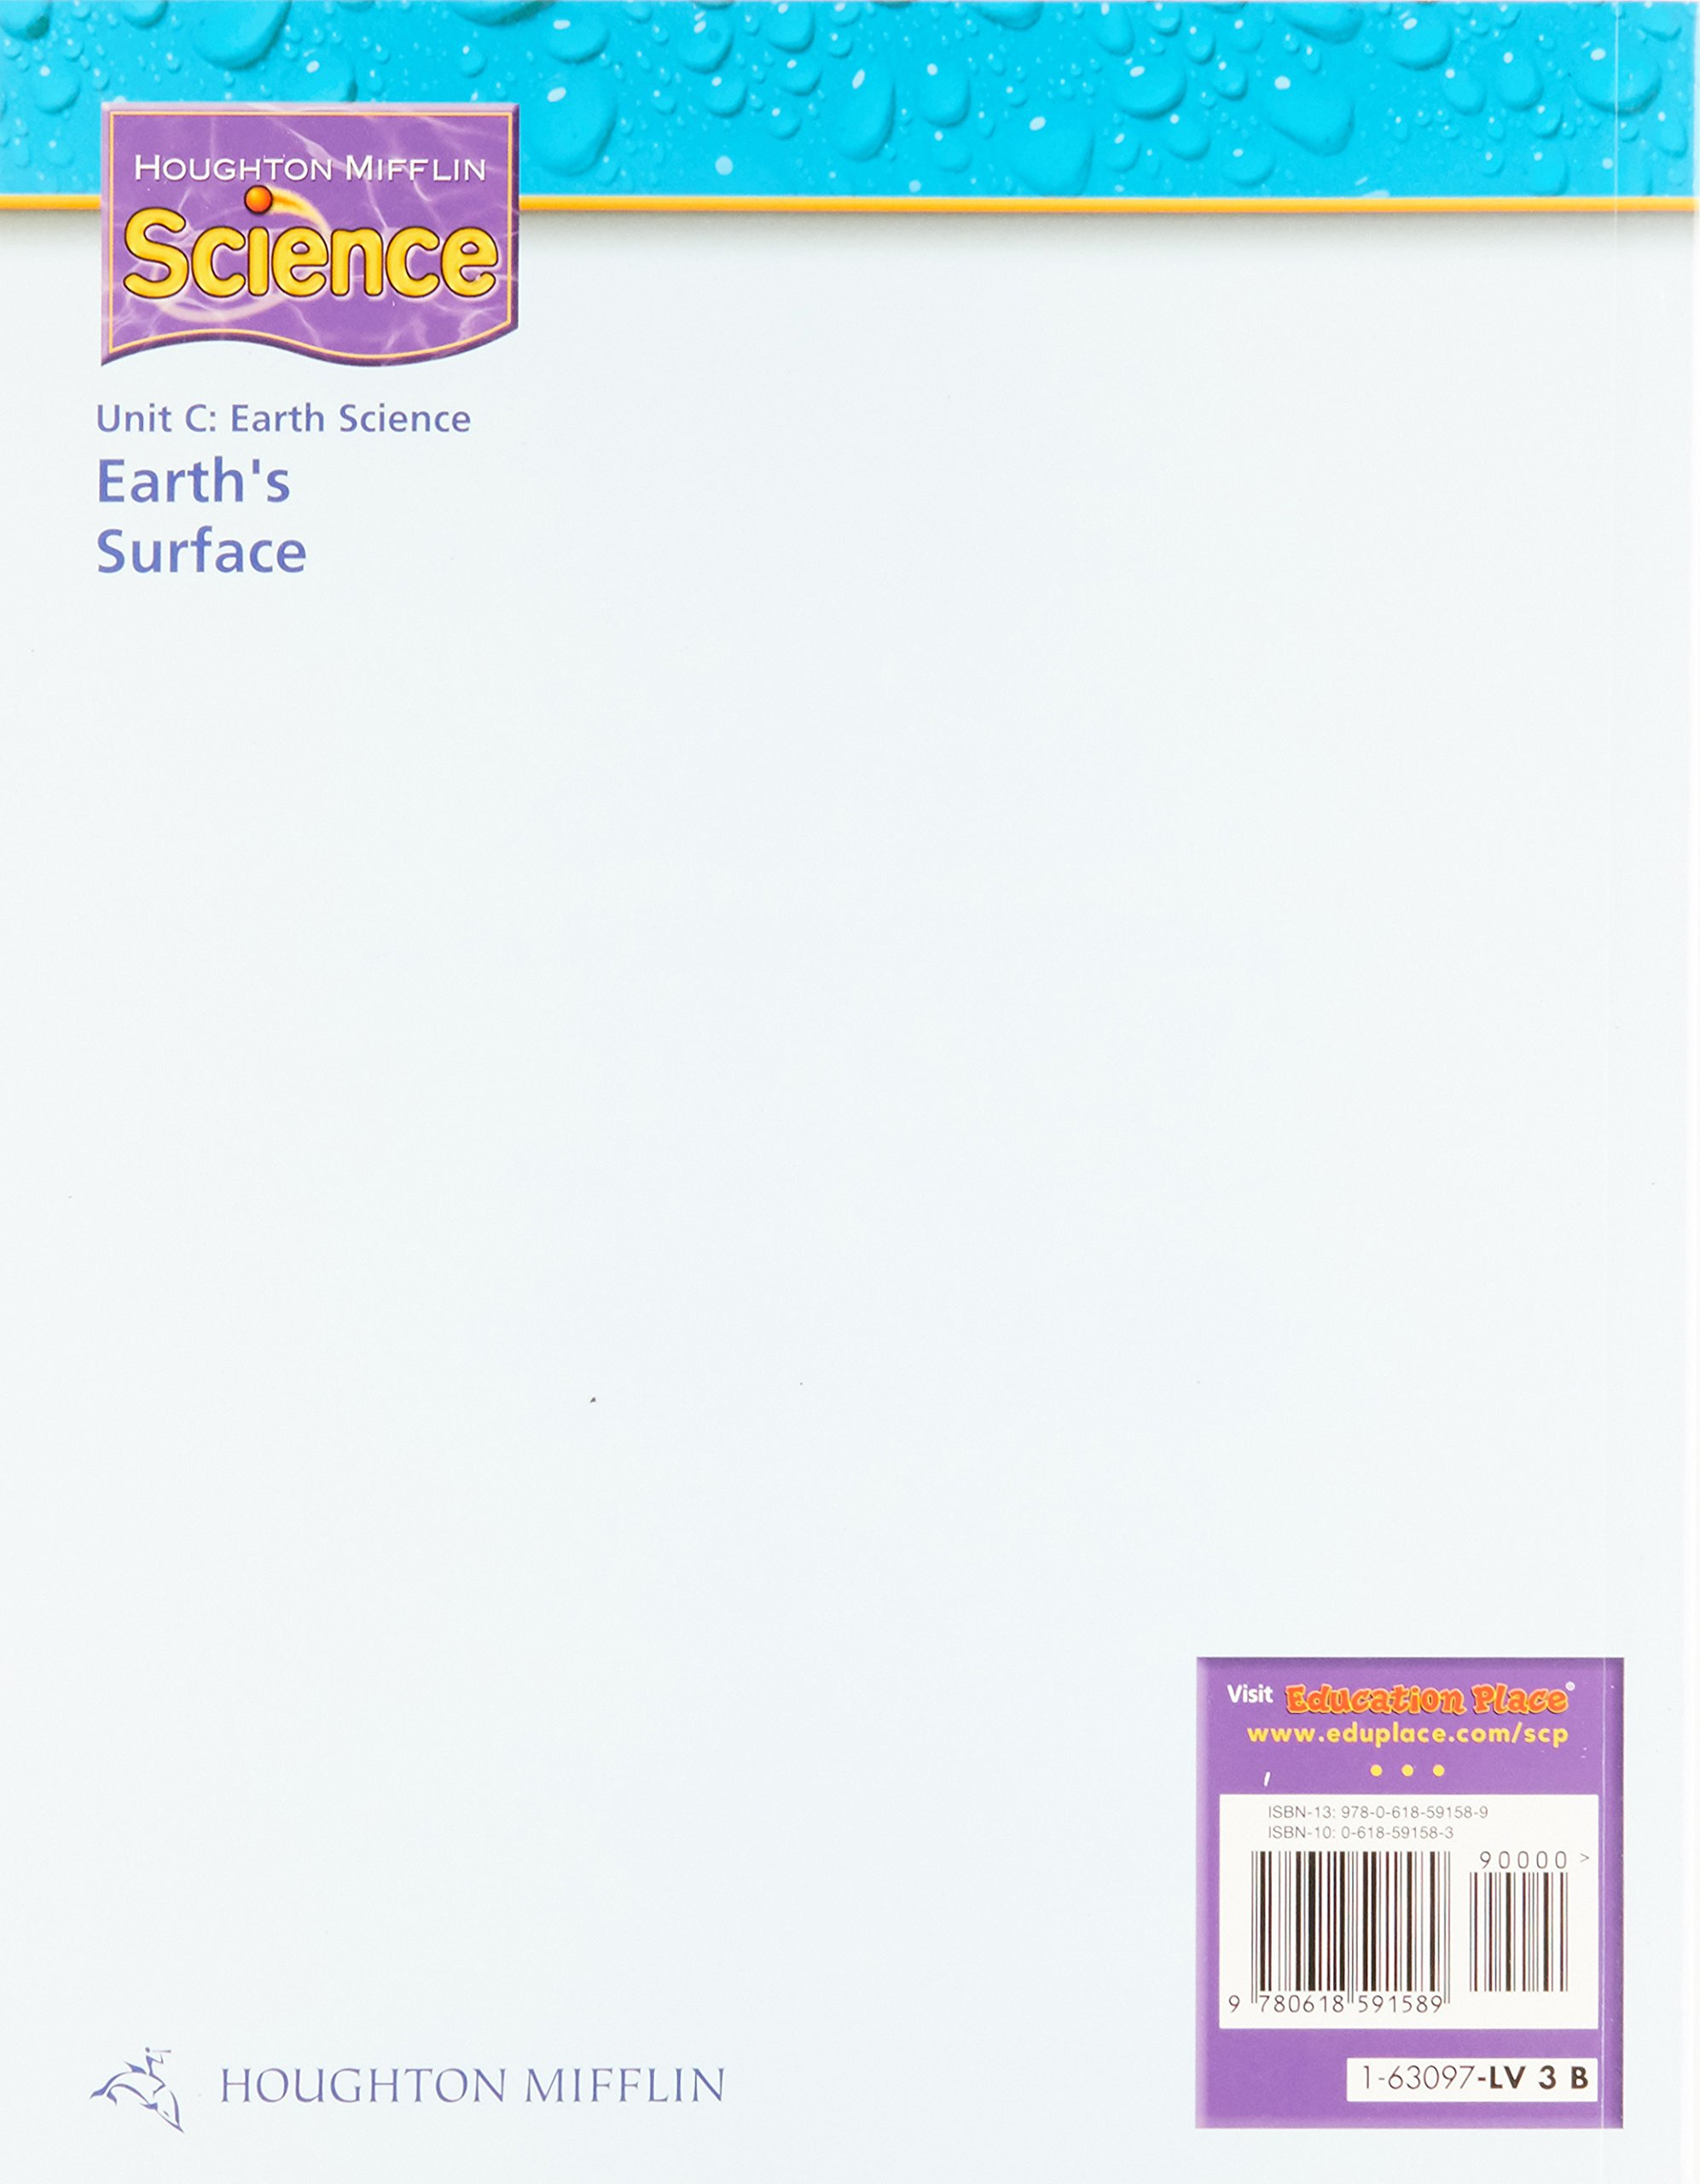 Science (Houghton Mifflin Unit C Earth's Surface)